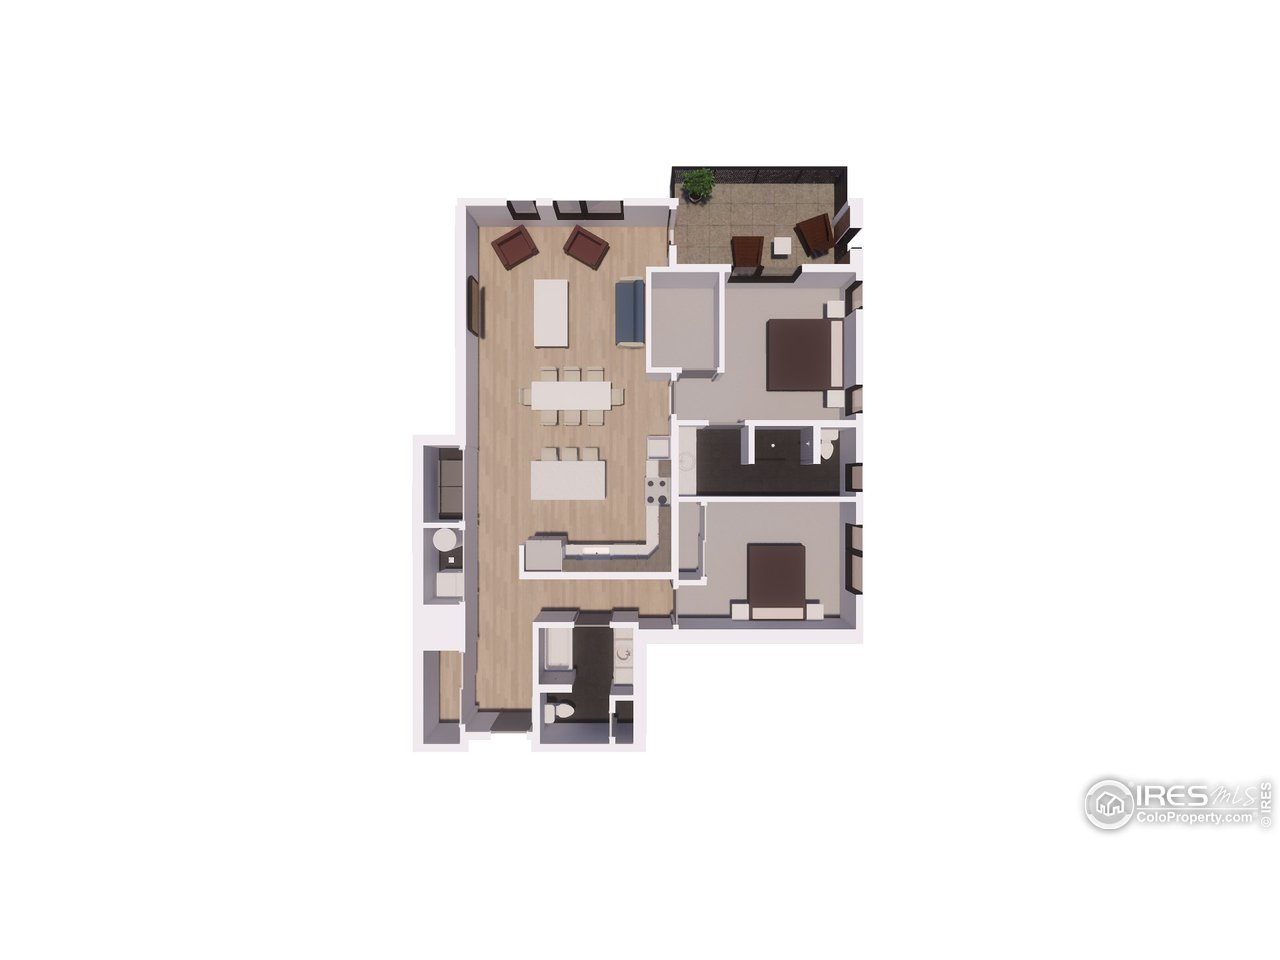 2 Bedroom/ 2 Bathroom Floor Plan